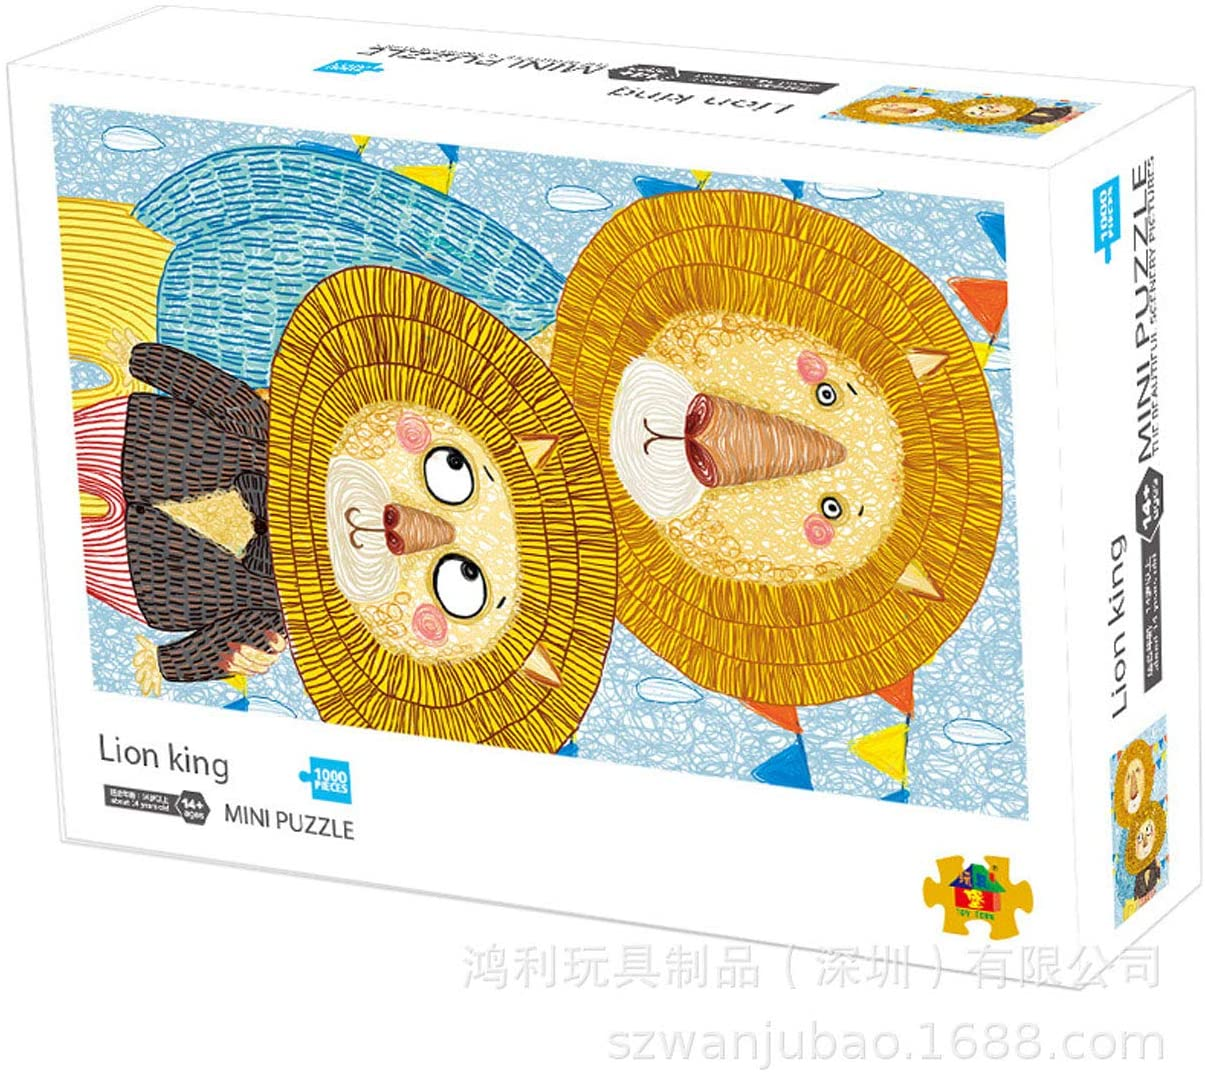 1000 Pieces Puzzles,Sights Views Jigsaw Puzzles for Adults, Puzzle Sets for Family, Cardboard Puzzles, World Masterpiece,Educational Games, Brain Challenge Puzzle for Kids Childrens (Lion King)